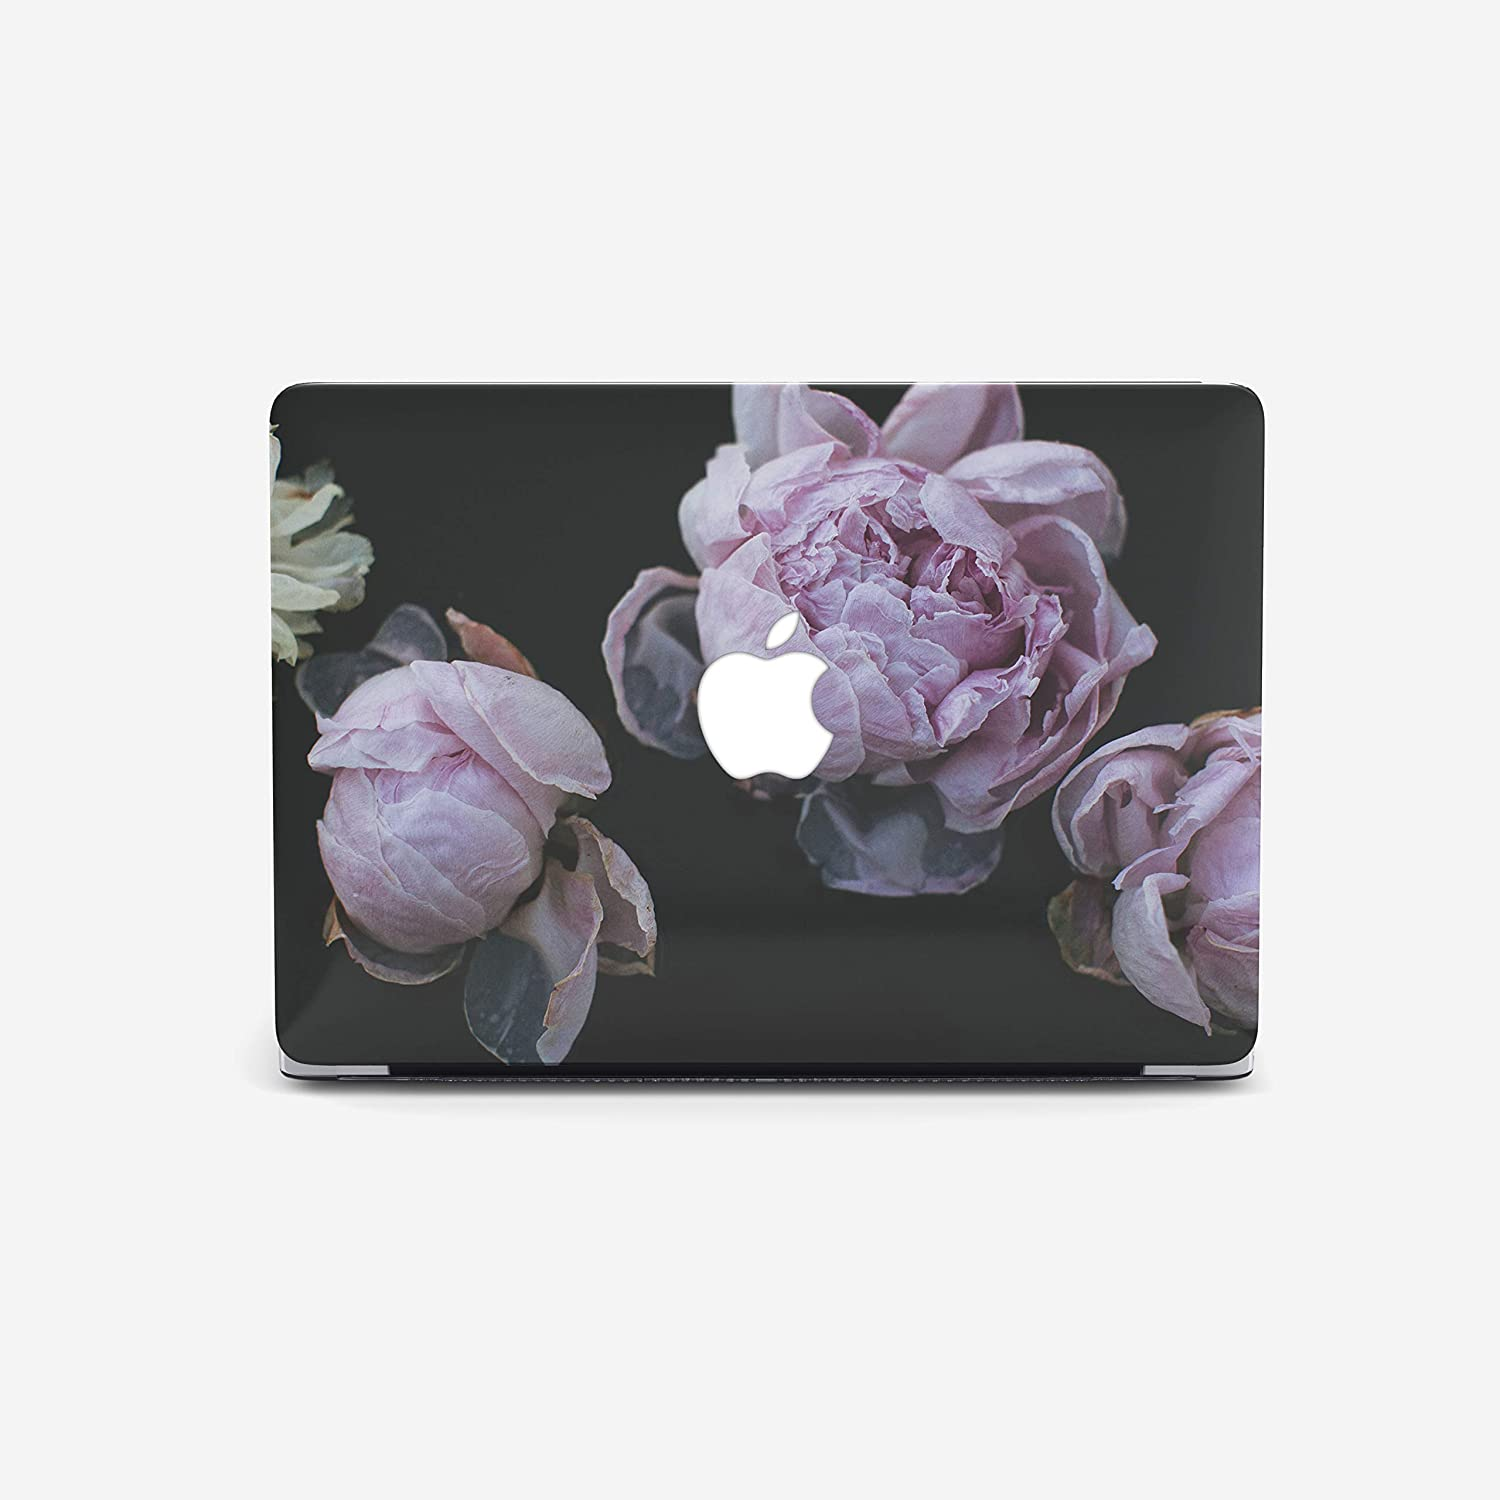 Purple Peony on Black Macbook Case for Macbook Air 13 inch, Macbook Pro 13 inch, Macbook Pro 15 inch, Macbook Pro, Macbook Air